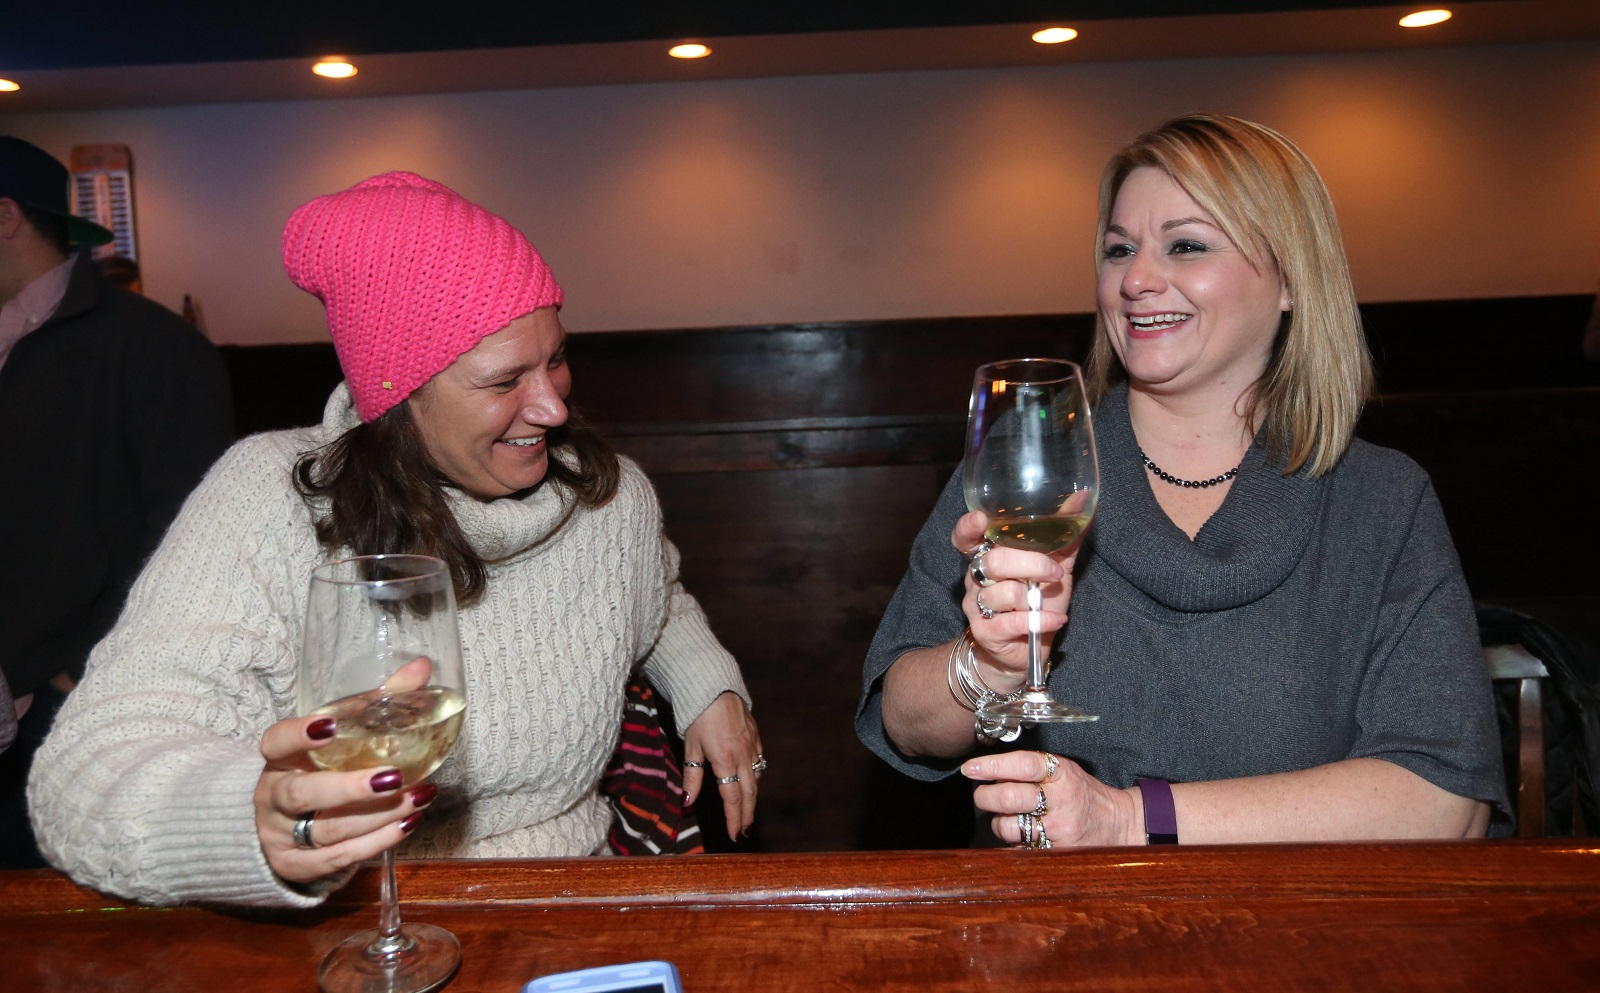 Rene Granda and Cheryl Doxbeck of South Buffalo hang out in Doc Sullivan's. (Sharon Cantillon/Buffalo News)